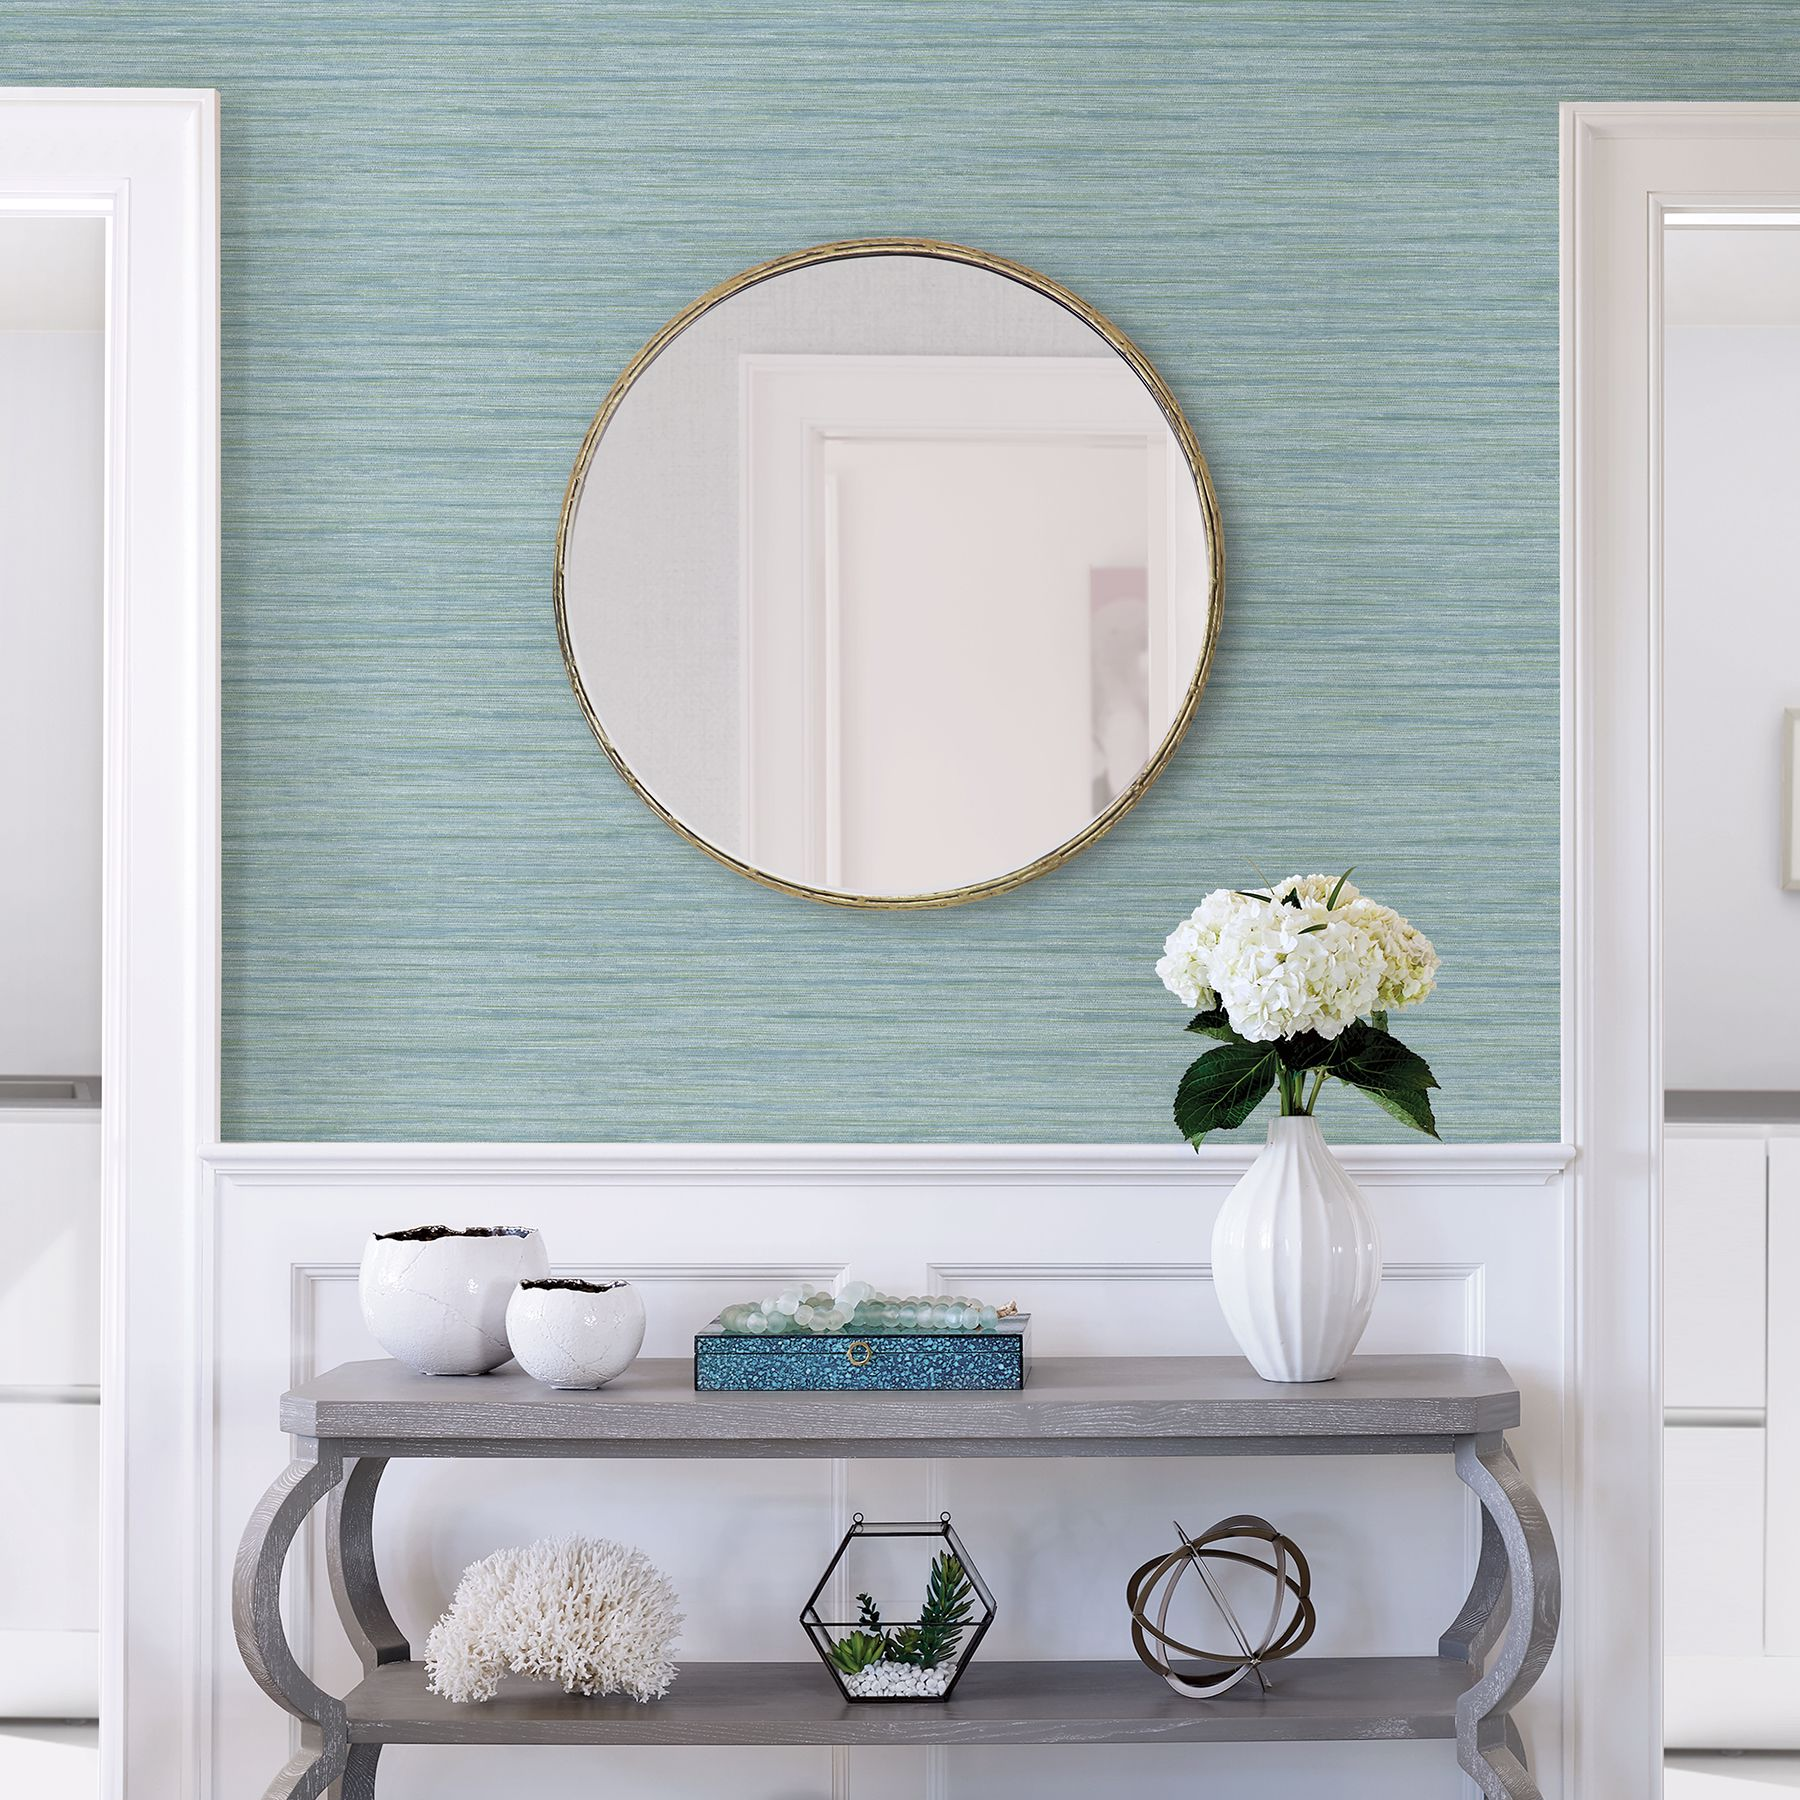 Property Brothers Scott Living Wallpaper Spring 2020 Apartment Therapy